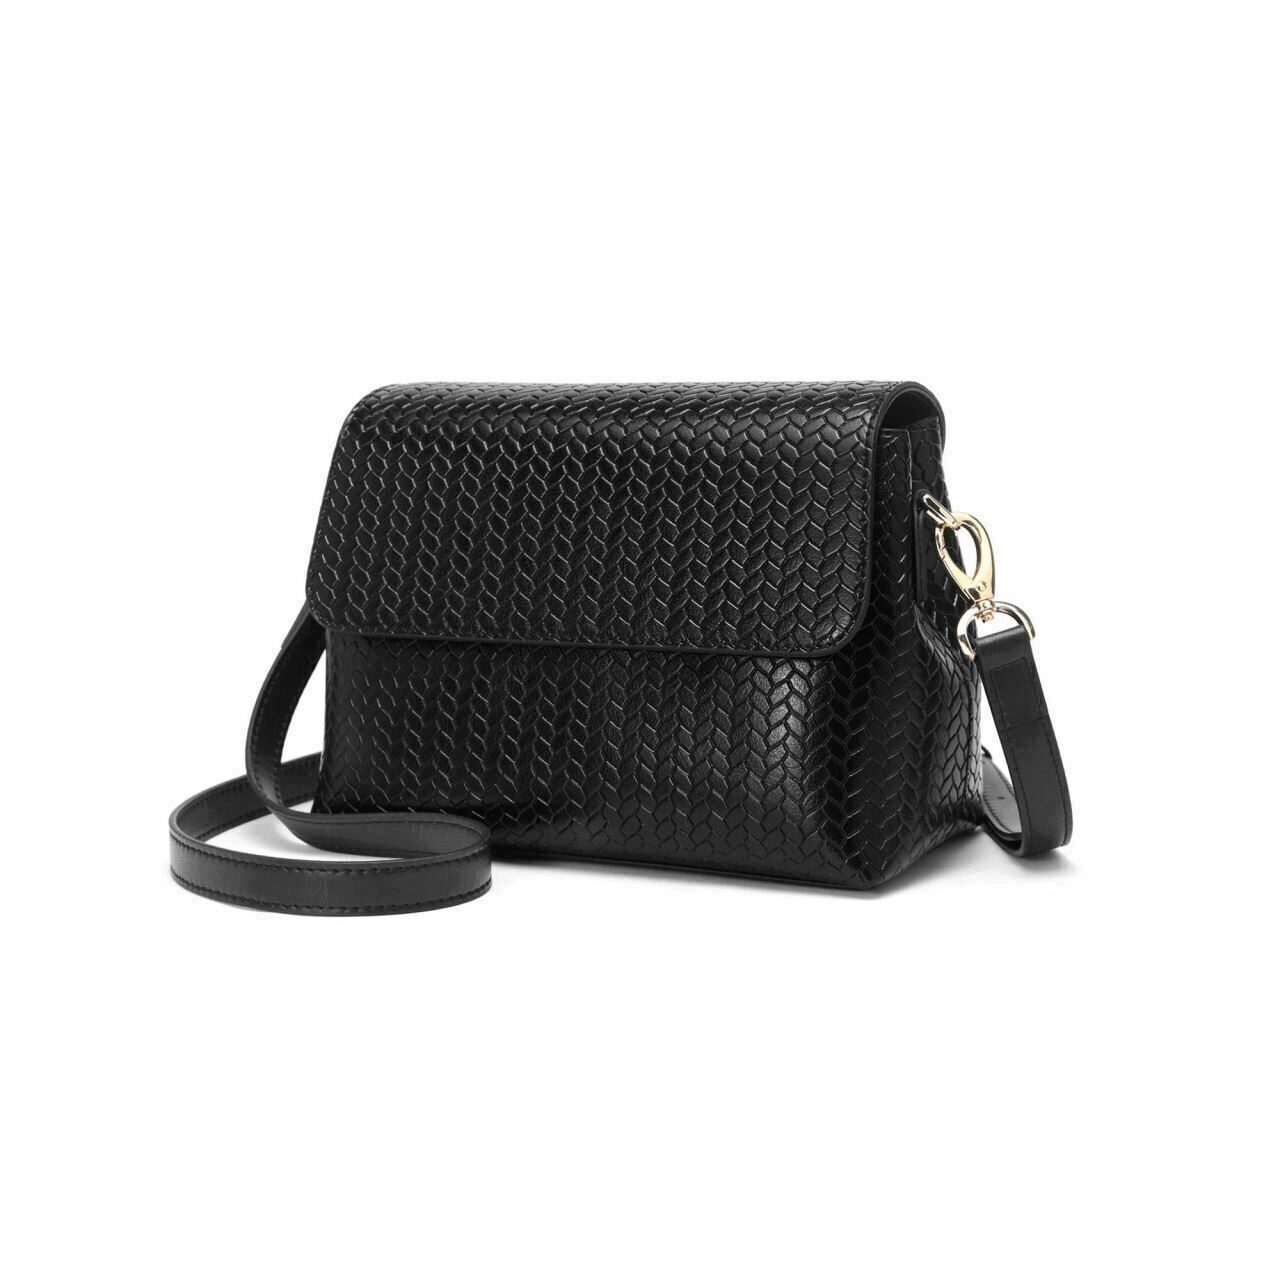 7638ffa9f22 C'iel Cloé cross-body bag - Ciel Bags